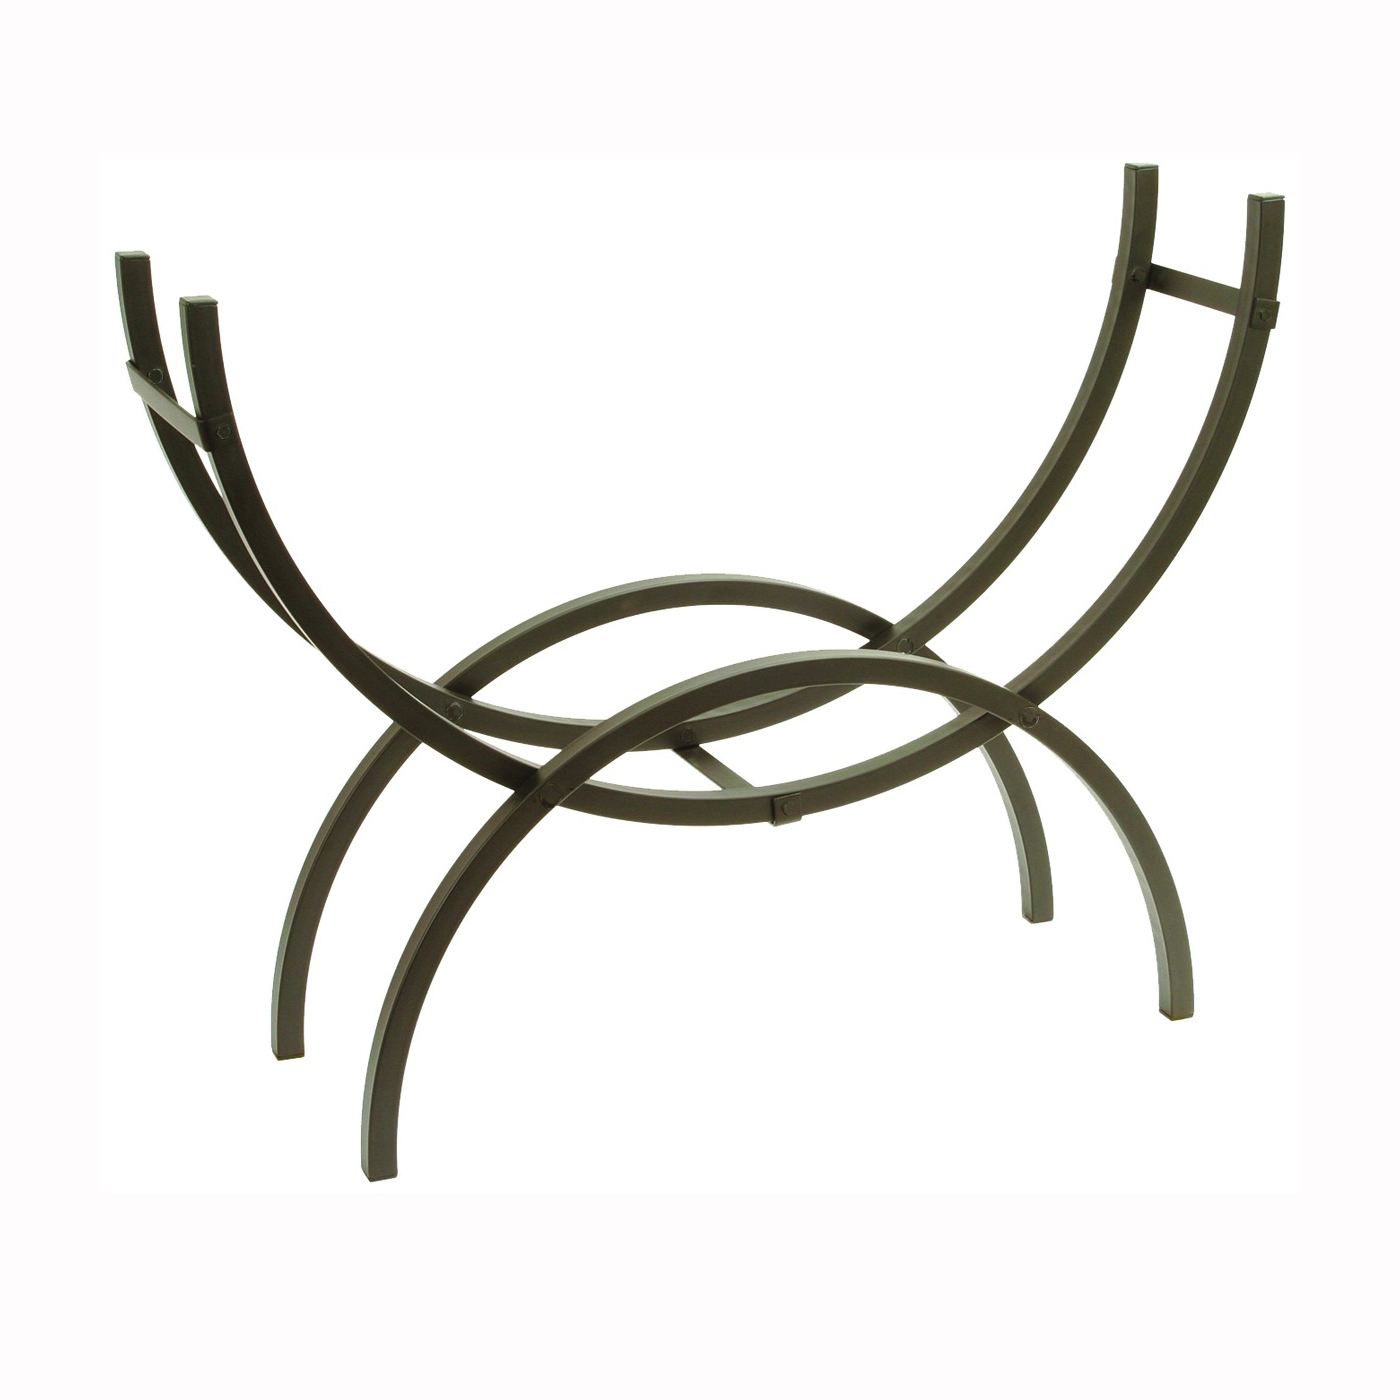 Picture of SHELTER SCRM Medium Crescent Log Holder, 14 in W, 48 in D, 40 in H, Steel Base, Powder-Coated, Black